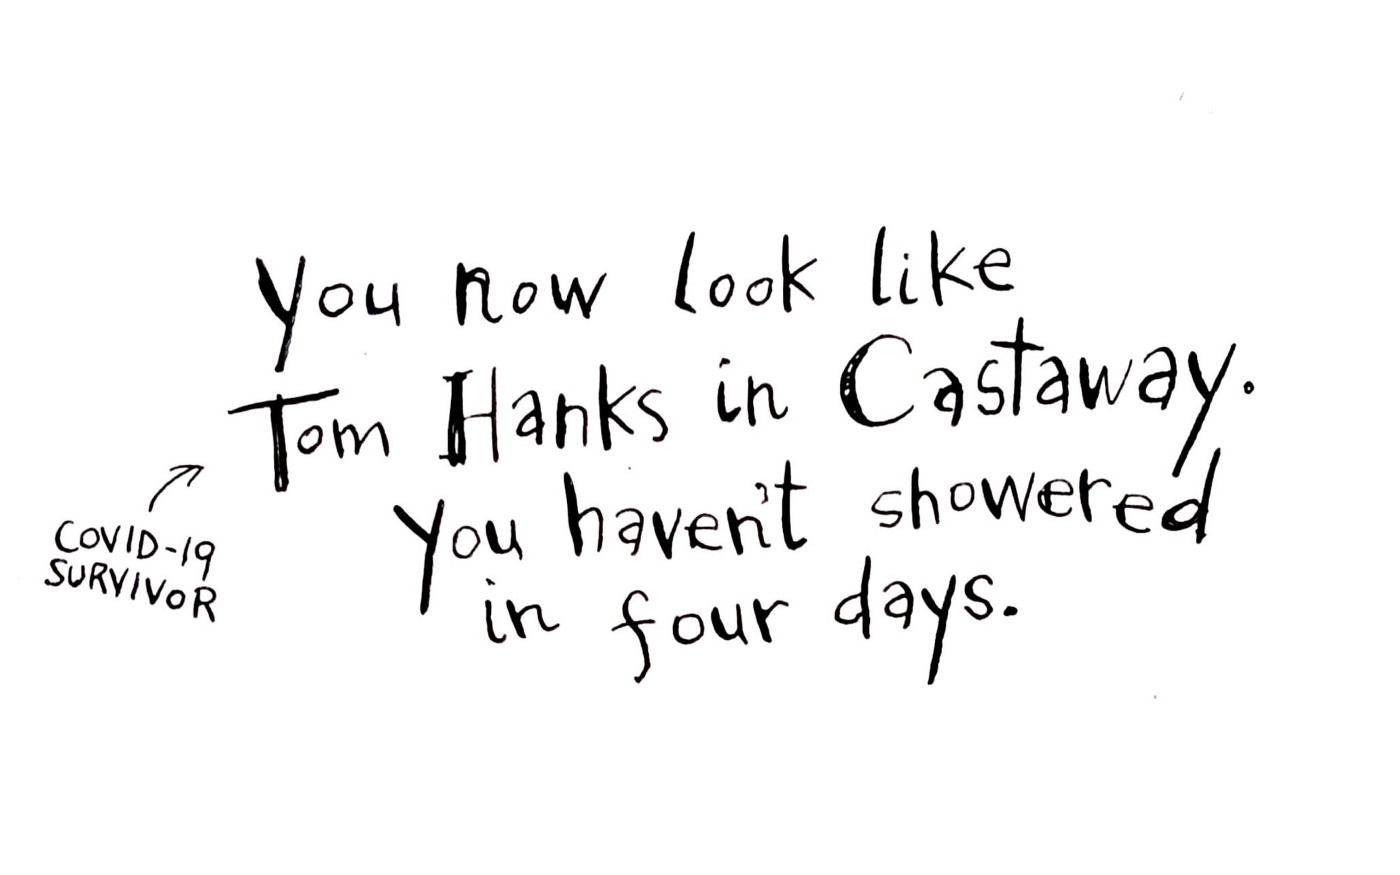 You now look like Tom Hanks in Castaway. You haven't showered in four days.